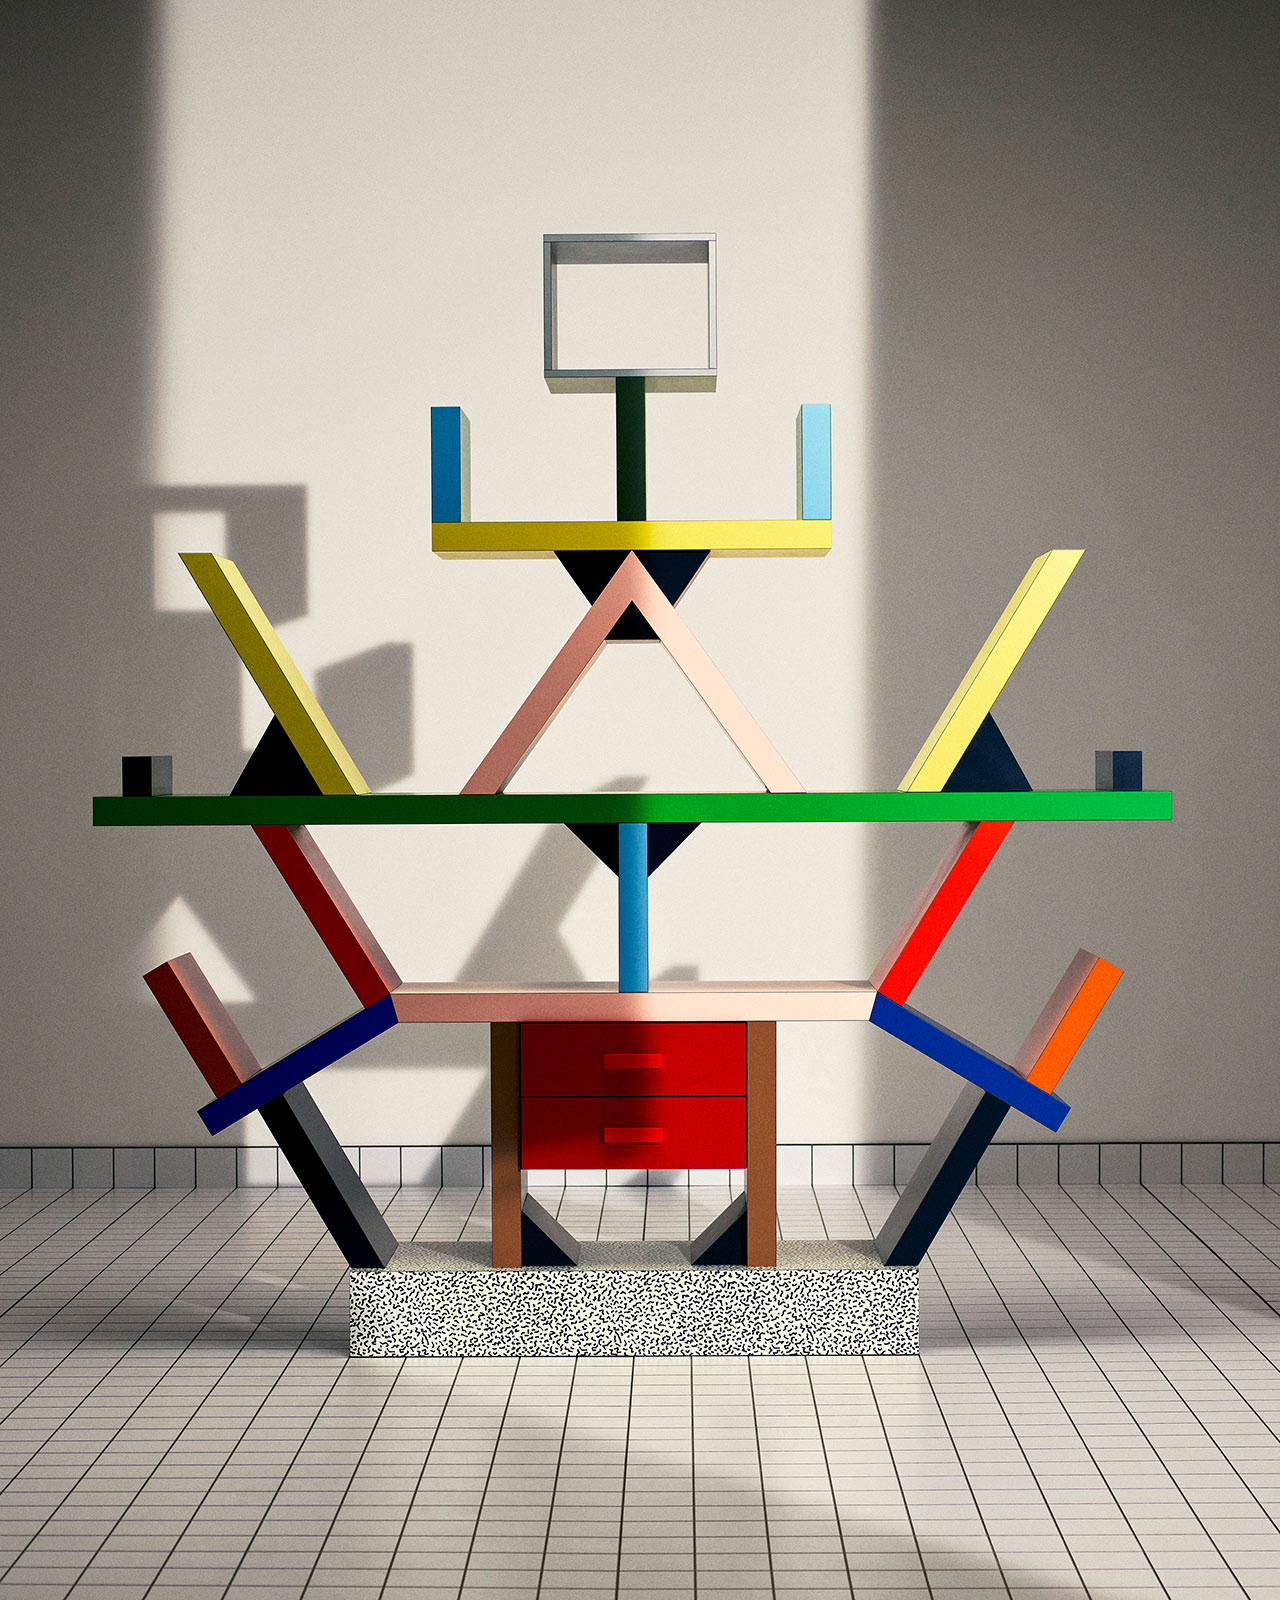 Saint Laurent partners with Memphis Milano for a playful home goods collection